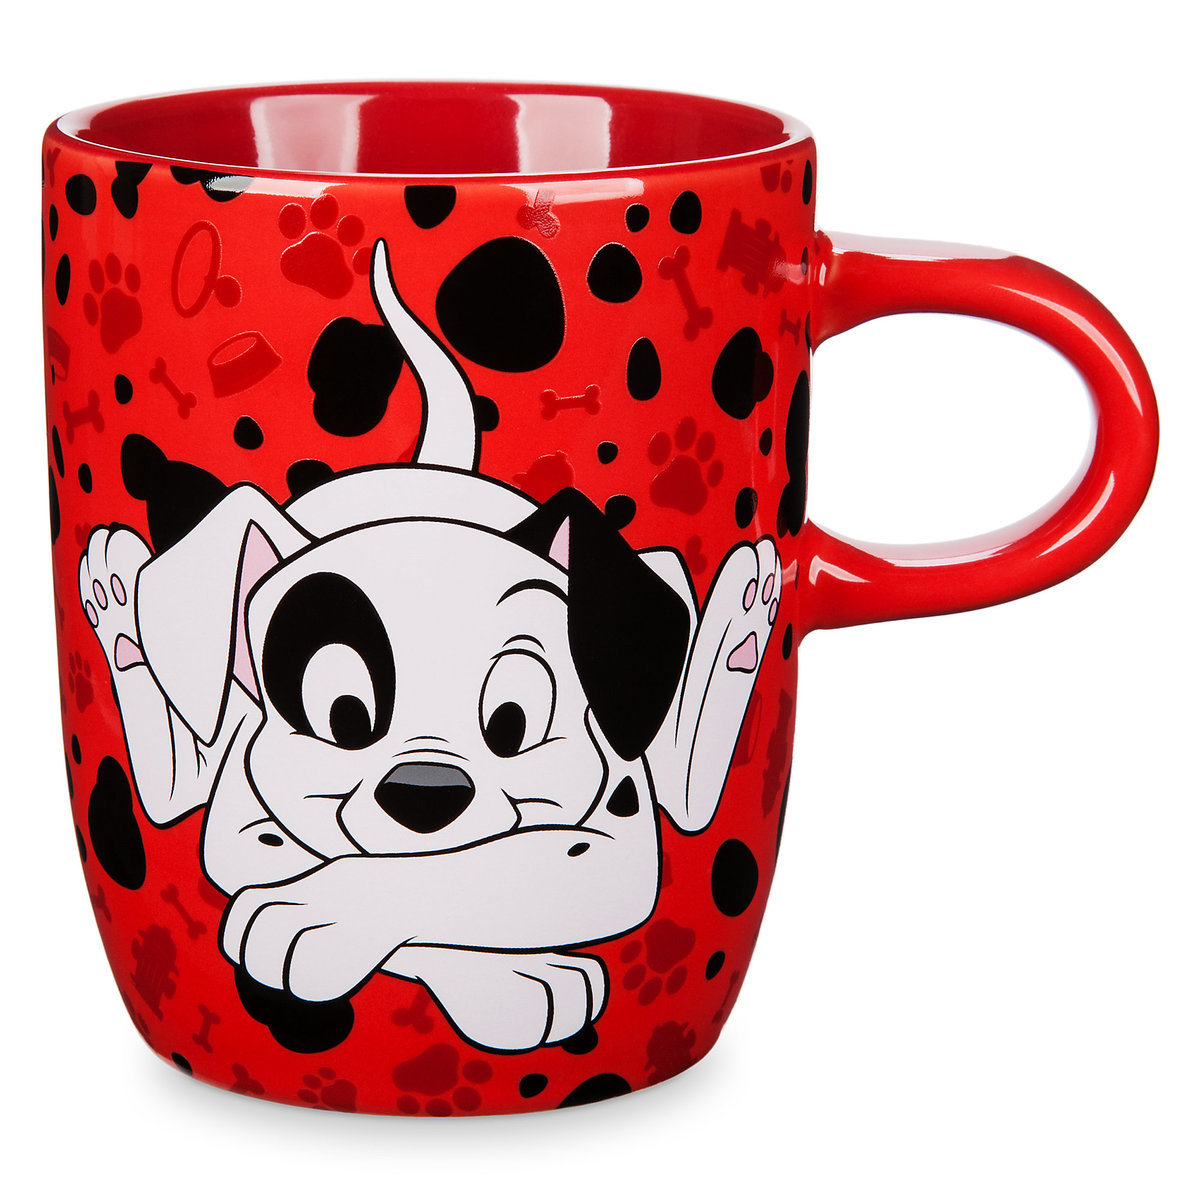 Disney Coffee Cup - 101 Dalmatians Patch